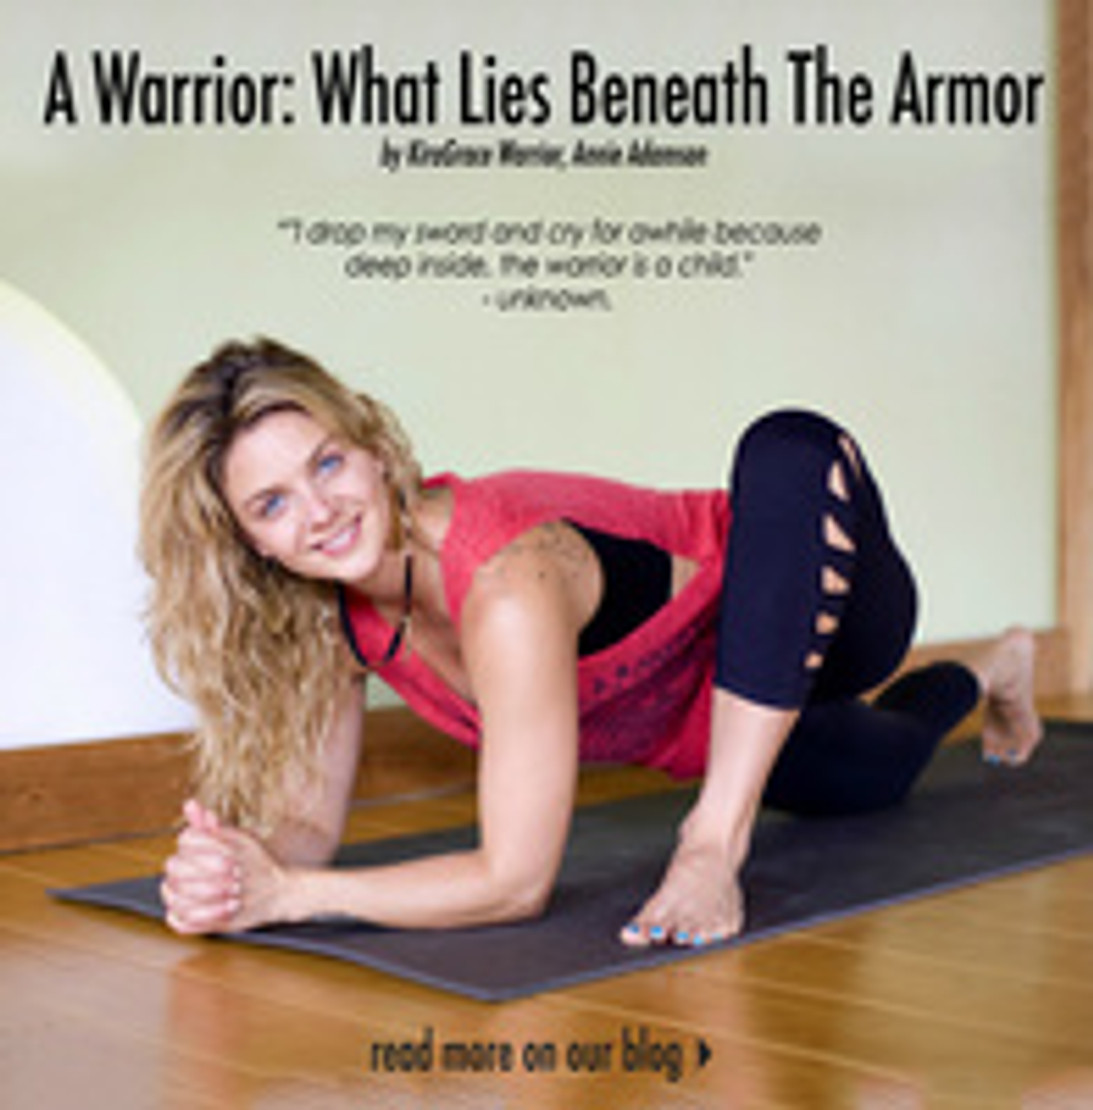 A Warrior: What Lies Beneath The Armor